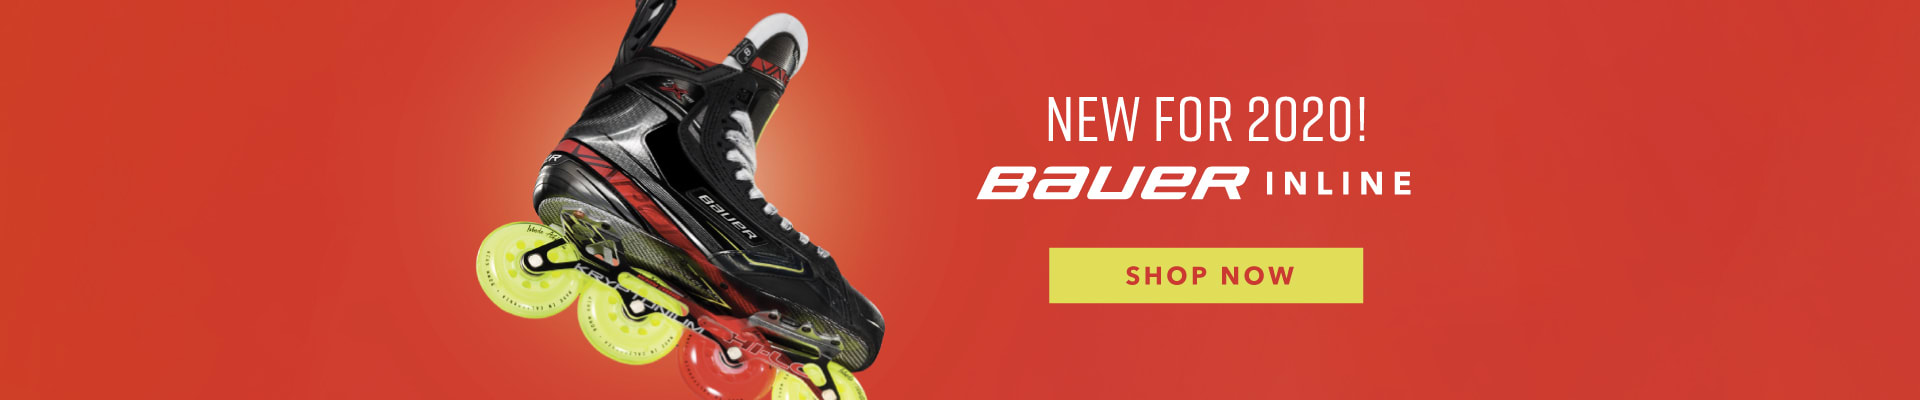 Shop New Bauer Inline Skates